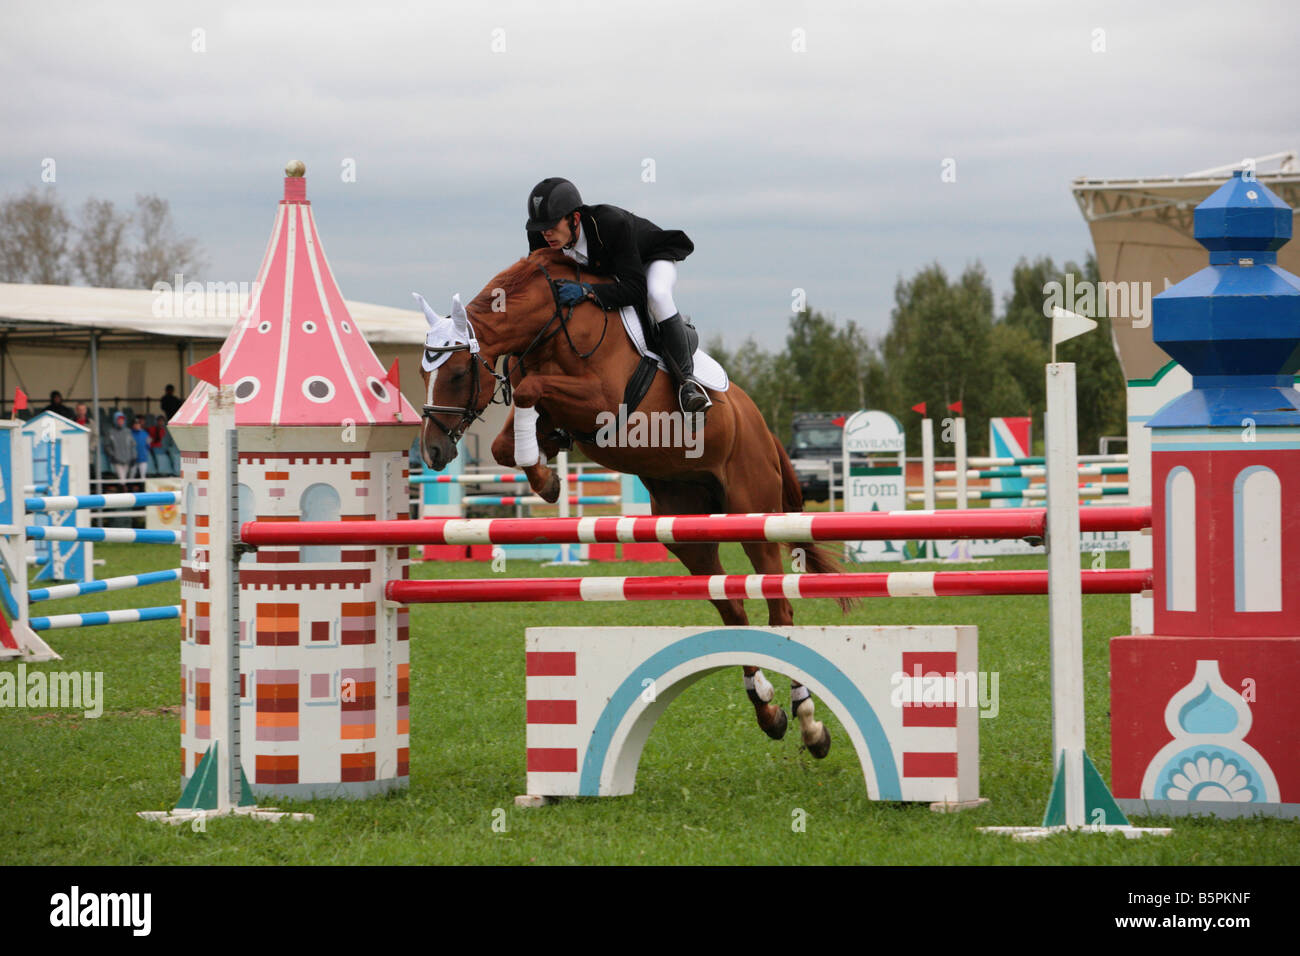 Show jumping - Stock Image